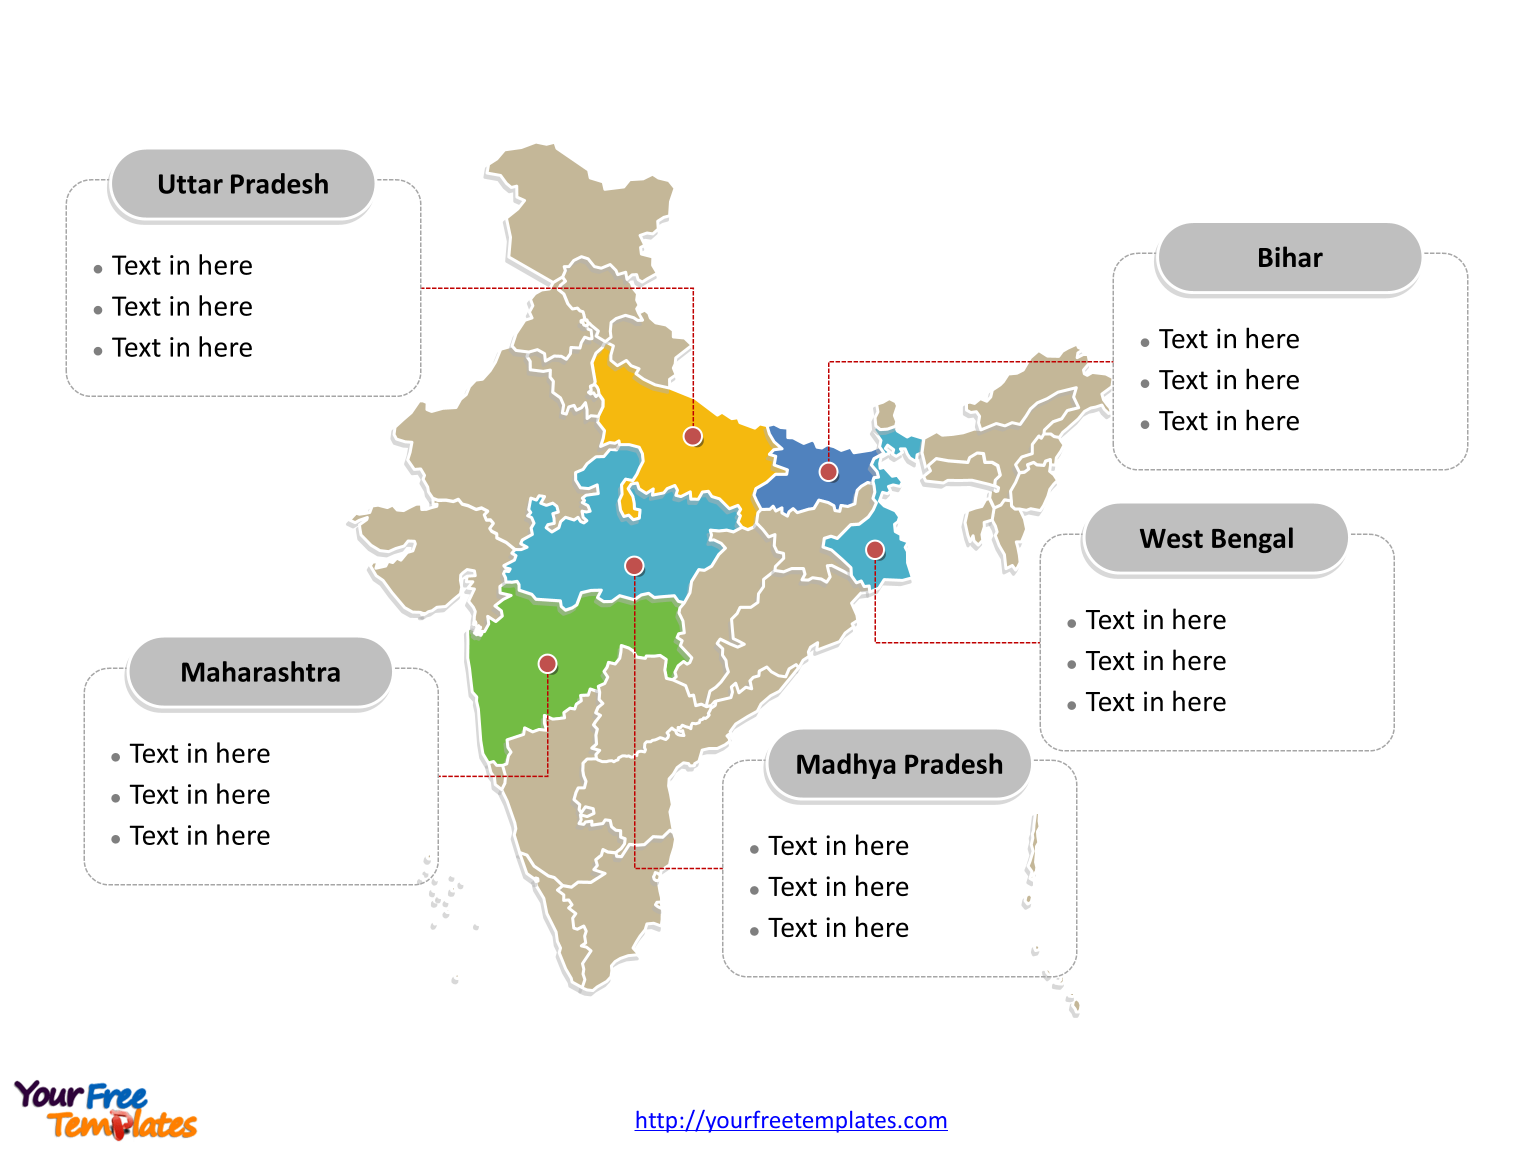 India map blank templates free powerpoint templates map of india with political division and major states labeled on the india map blank templates toneelgroepblik Image collections